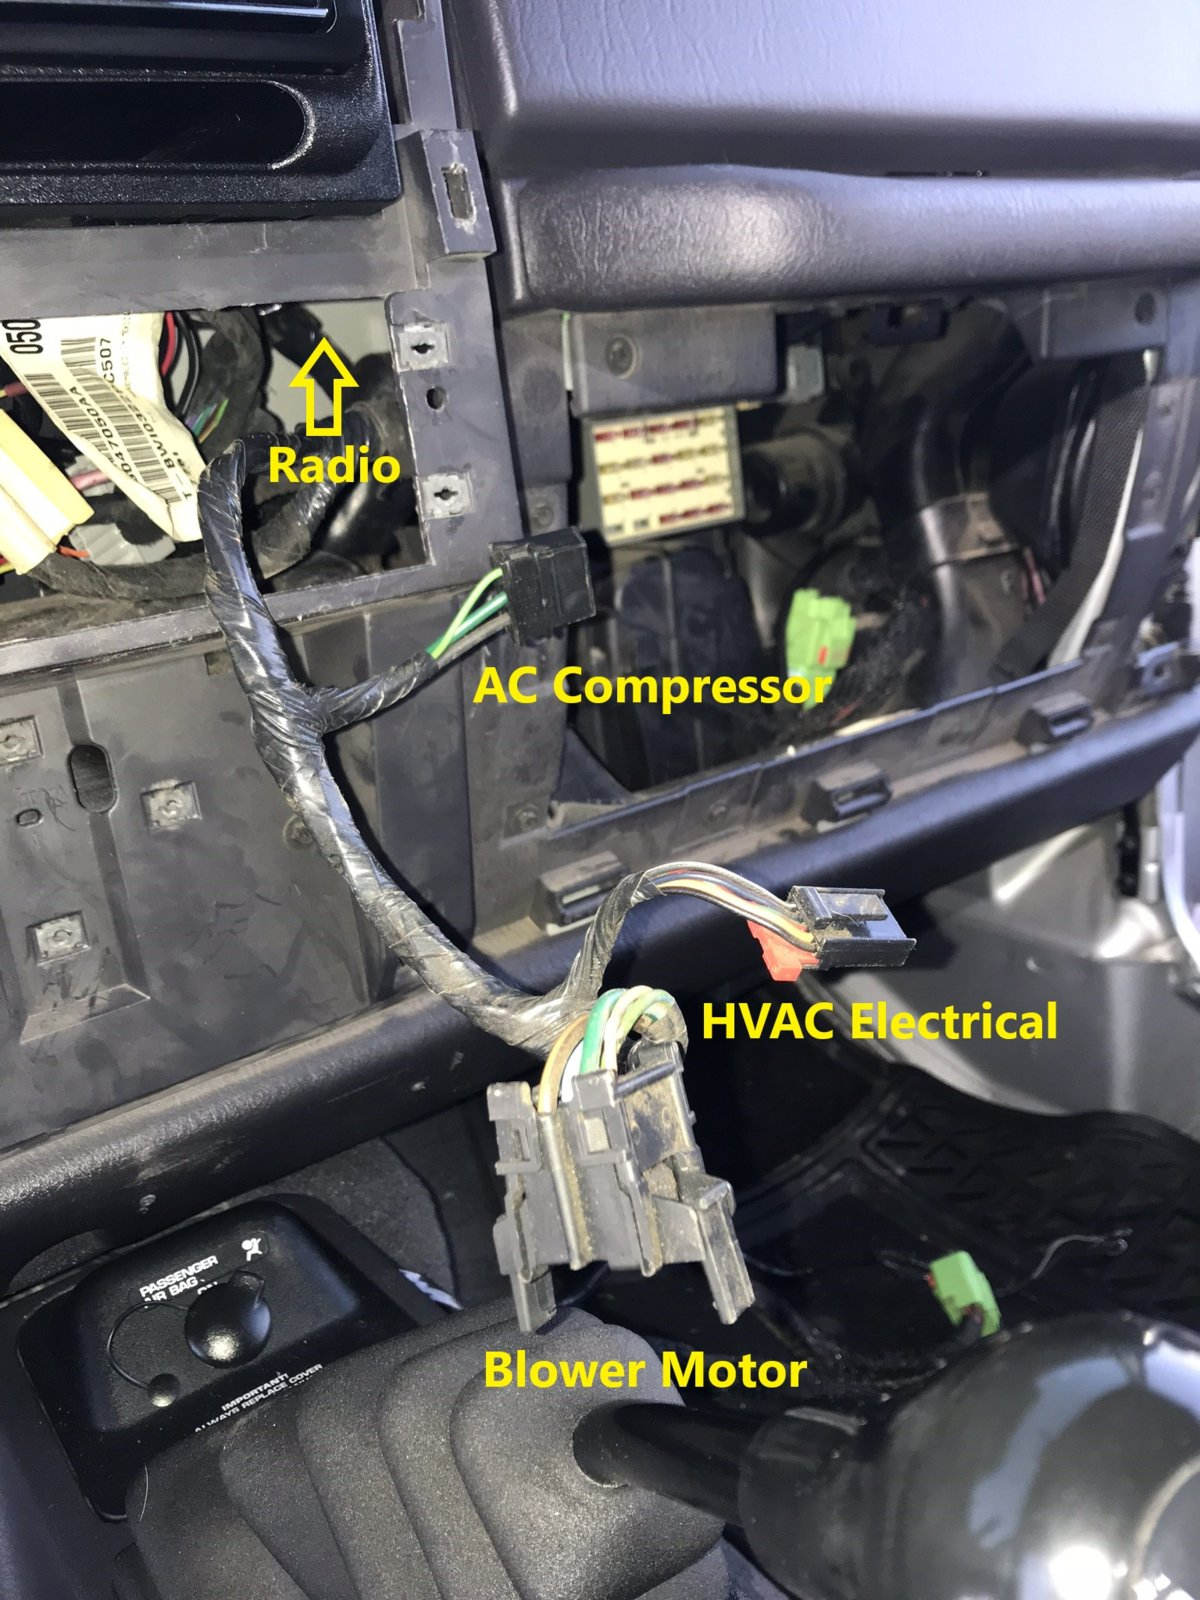 How to Factory Wire your TJ for a Hardtop Part 1 (Dash Harness ... Under Dash Wiring Harness Jeep Wrangler on 1994 jeep wrangler wiring harness, 2004 jeep wrangler wiring harness, 1998 jeep wrangler wiring harness, jeep wrangler tj wiring harness, 2004 jeep grand cherokee wiring harness, 1995 jeep wrangler wiring harness, 1999 jeep wrangler wiring harness, 2001 dodge durango wiring harness, 2000 jeep grand cherokee wiring harness, 2000 jeep wrangler wiring harness, 2001 chevy silverado wiring harness, 1988 jeep wrangler wiring harness, 1997 jeep wrangler wiring harness, 2001 gmc jimmy wiring harness, 2006 jeep wrangler wiring harness, 1987 jeep wrangler wiring harness, 1998 jeep grand cherokee wiring harness, jeep jk trailer wiring harness, 1986 jeep cj7 wiring harness, 1999 jeep grand cherokee wiring harness,